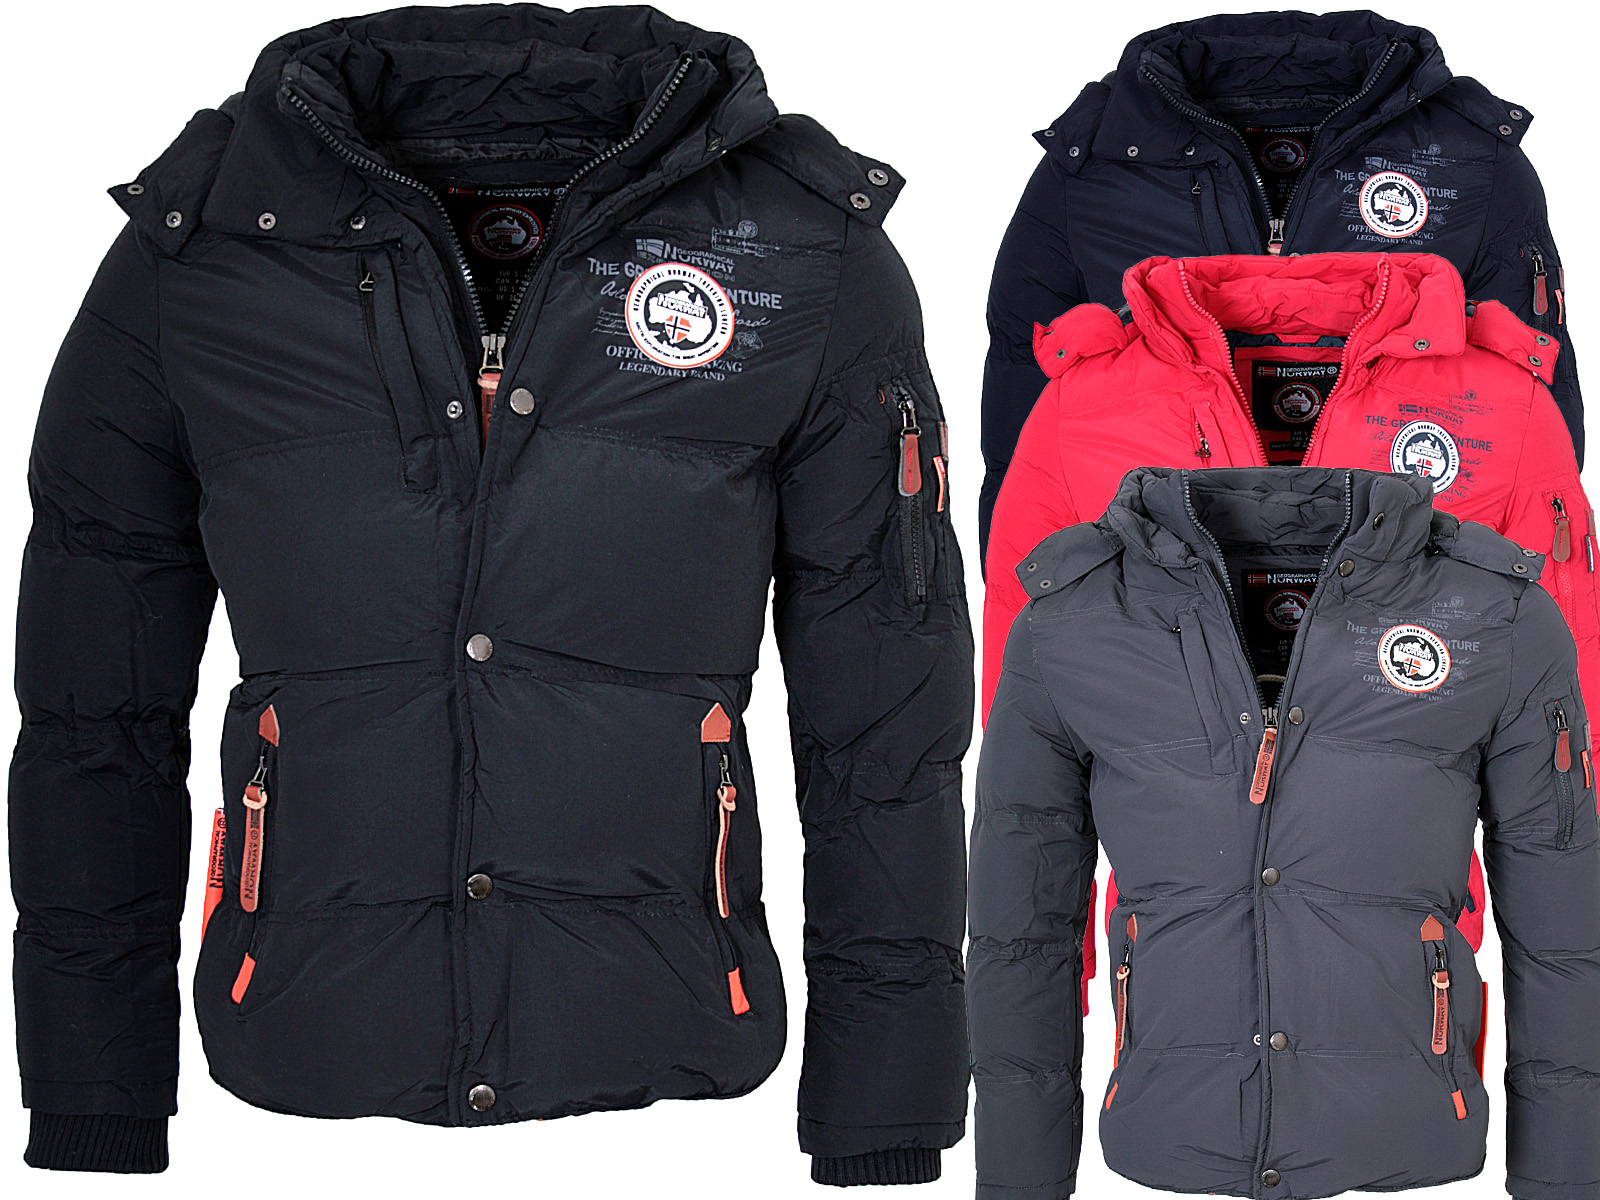 geographical norway men 39 s winter jacket winter parka warm. Black Bedroom Furniture Sets. Home Design Ideas